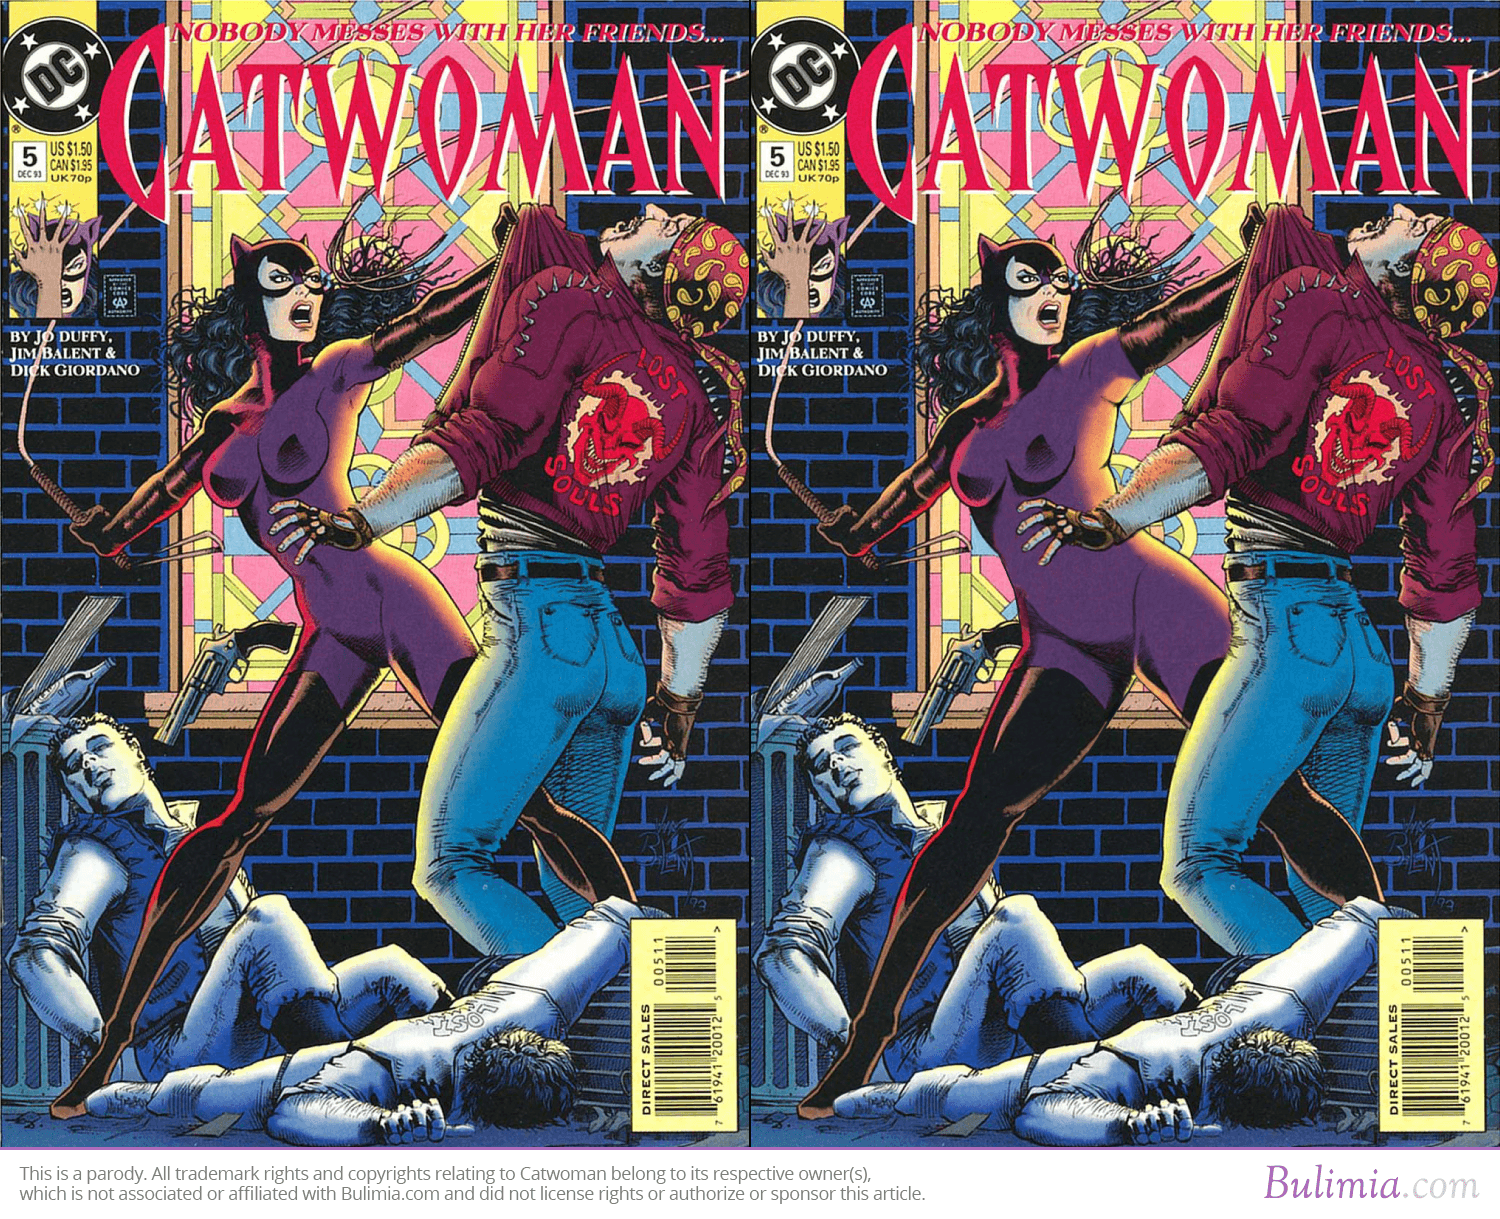 A Catwoman comic cover next to a reworked version